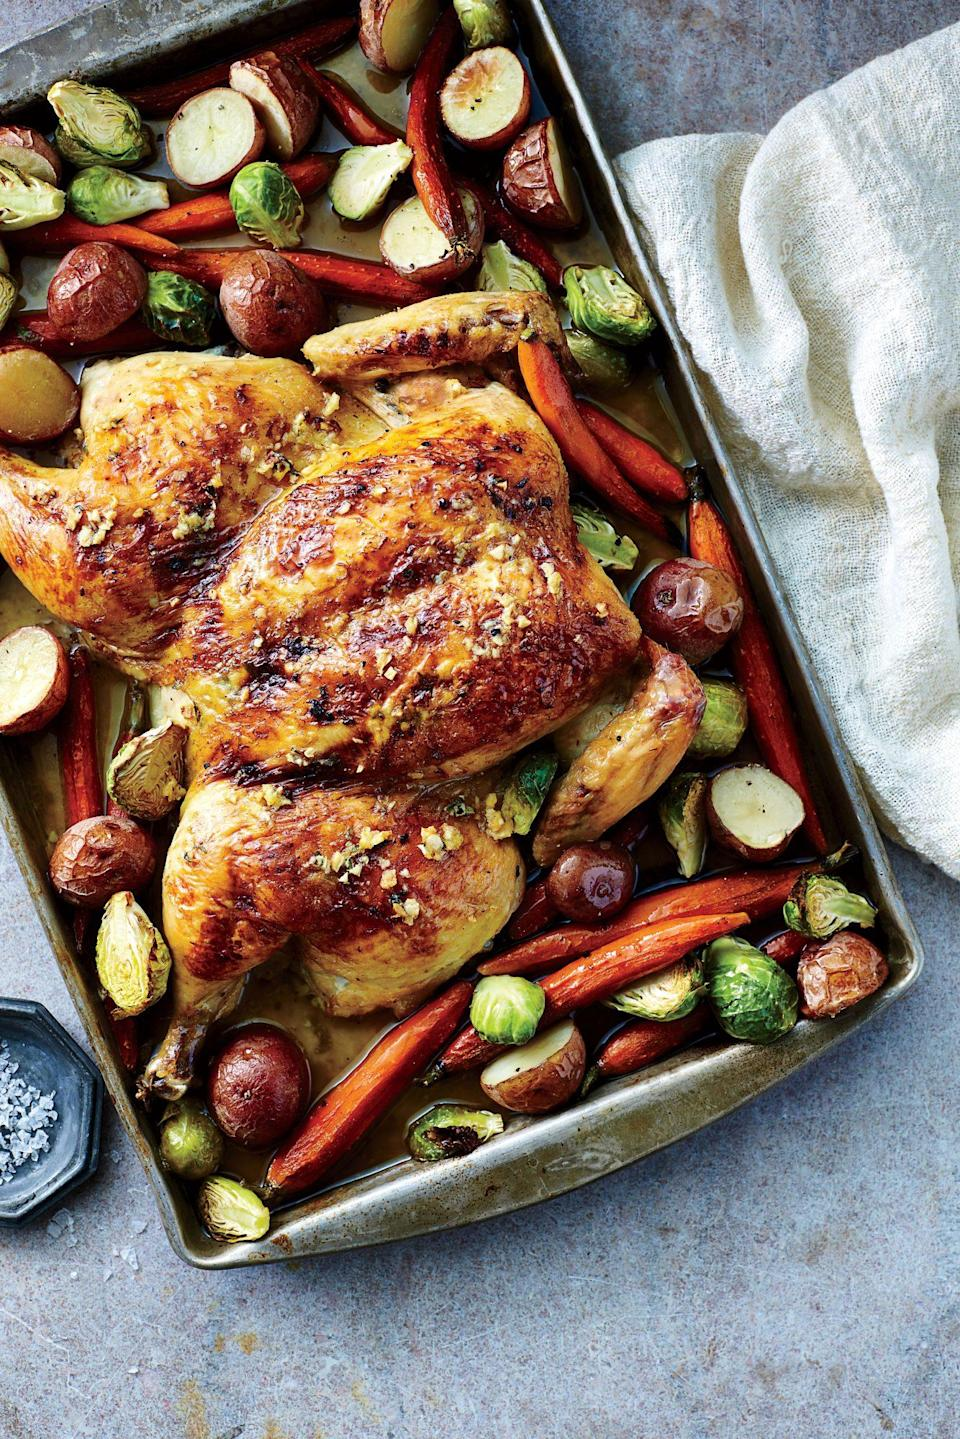 """<p><strong>Recipe: <a href=""""https://www.southernliving.com/recipes/roast-spatchcock-chicken"""" rel=""""nofollow noopener"""" target=""""_blank"""" data-ylk=""""slk:Roasted Spatchcock Chicken"""" class=""""link rapid-noclick-resp"""">Roasted Spatchcock Chicken</a></strong></p> <p>If you find roasting a whole chicken intimidating, this sheet pan recipe will help you achieve the ideal crispiness without over-drying the meat. </p>"""